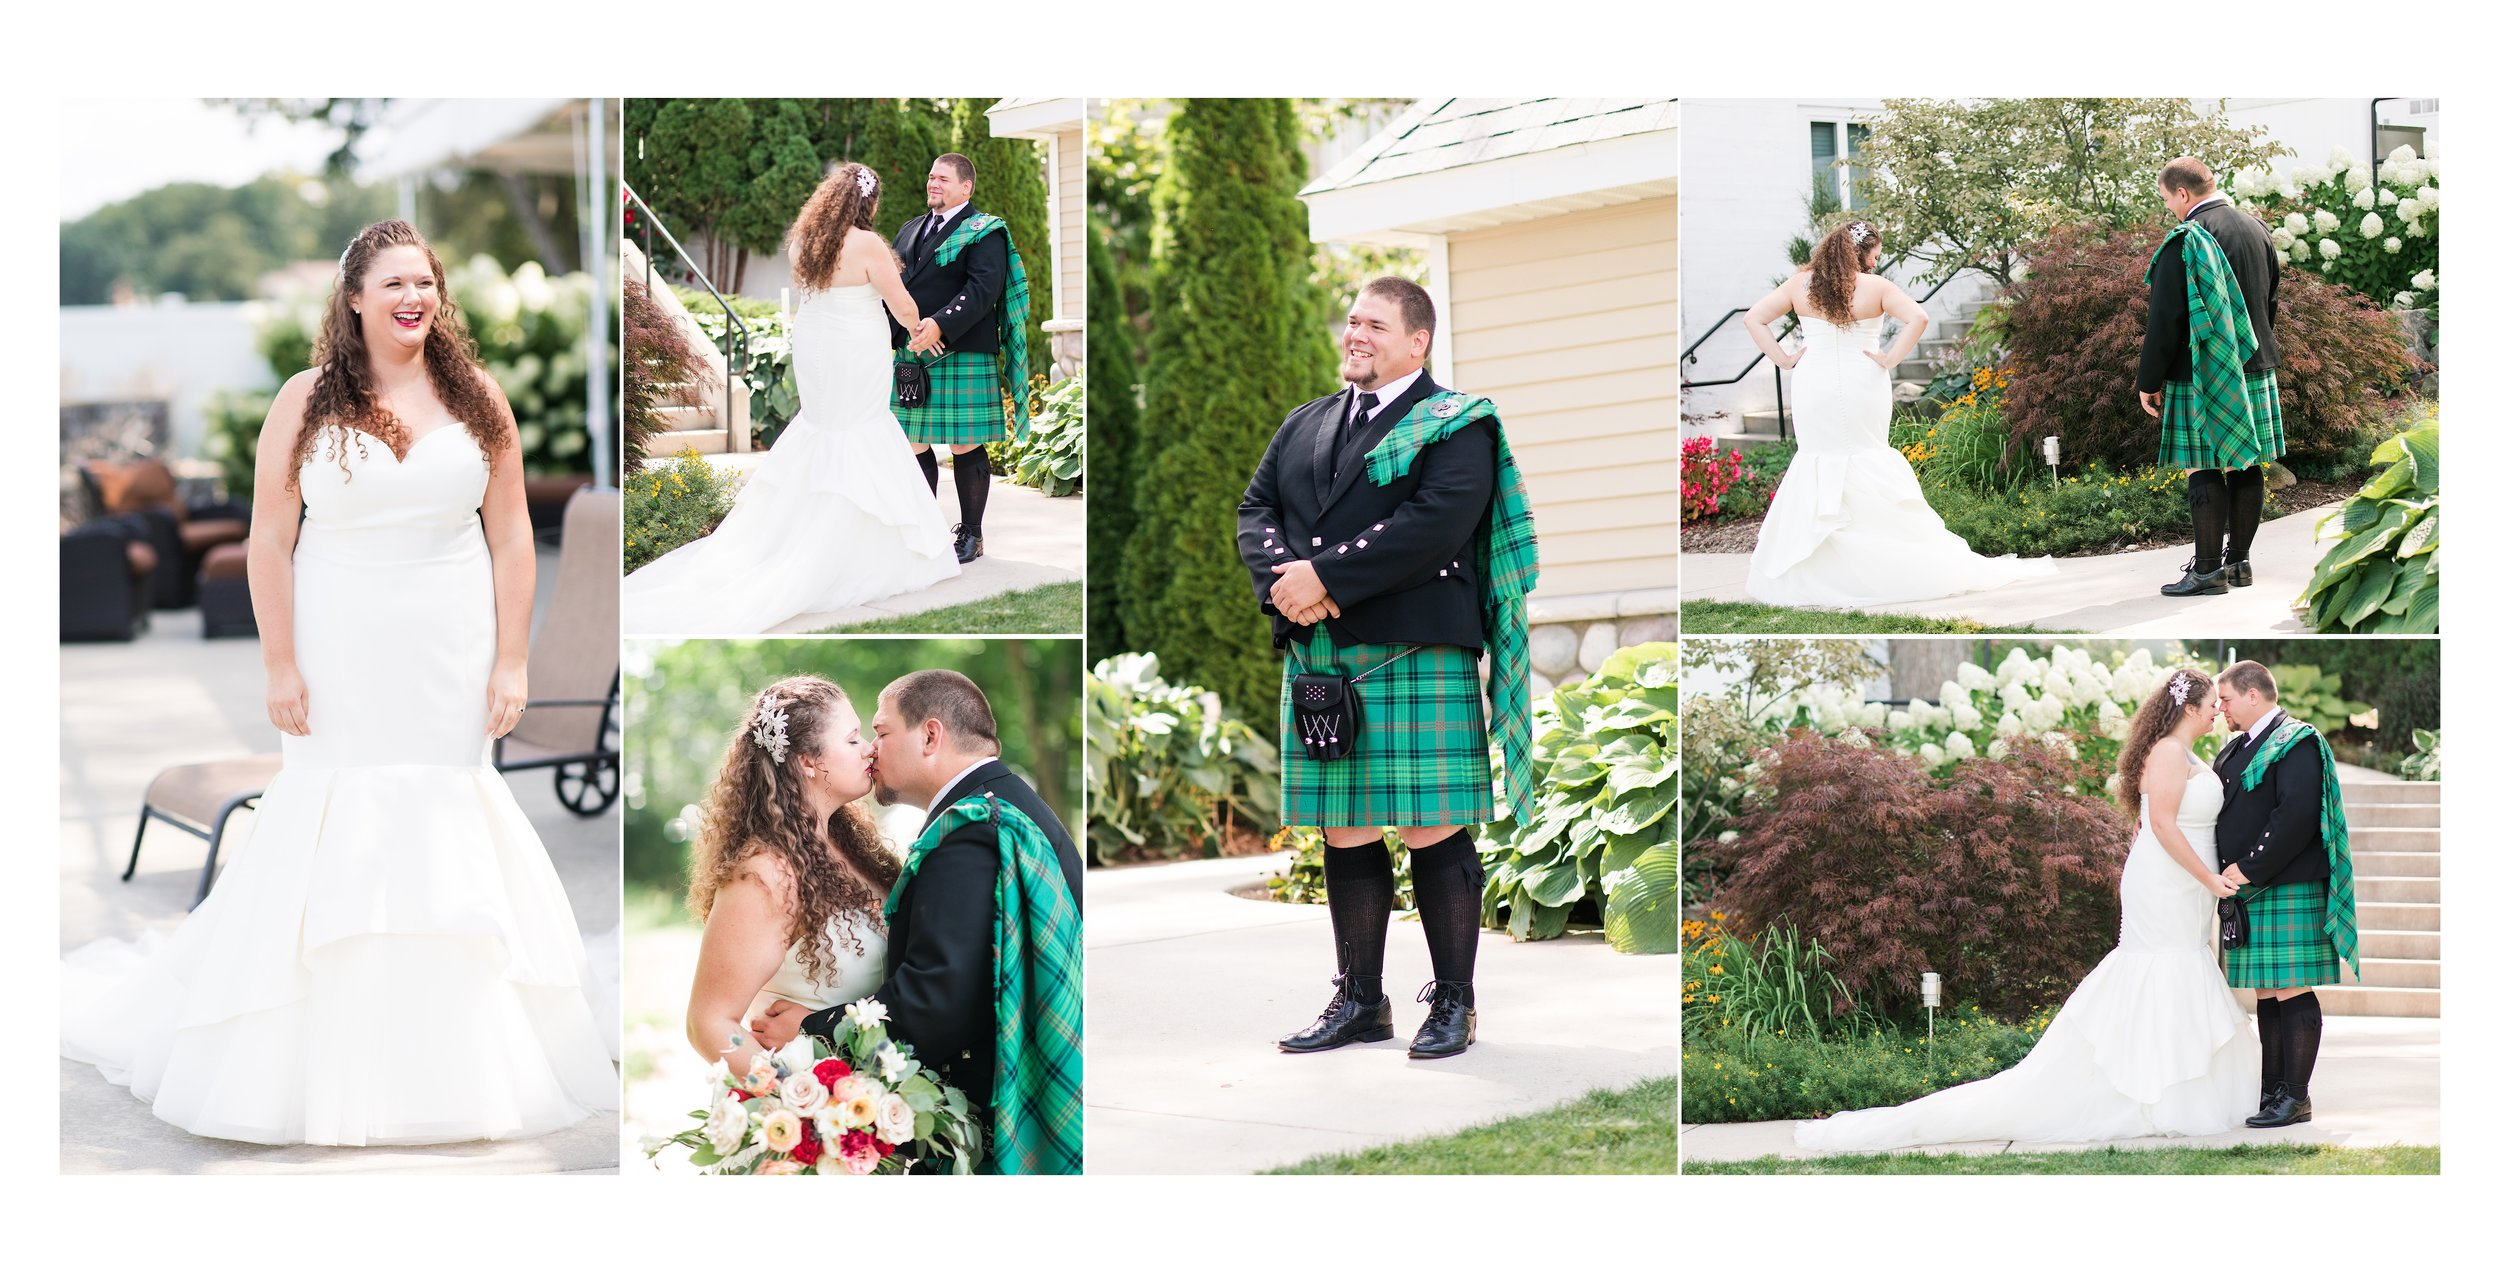 Our_Wedding_Album_12x12_-_30_pages_11.jpg